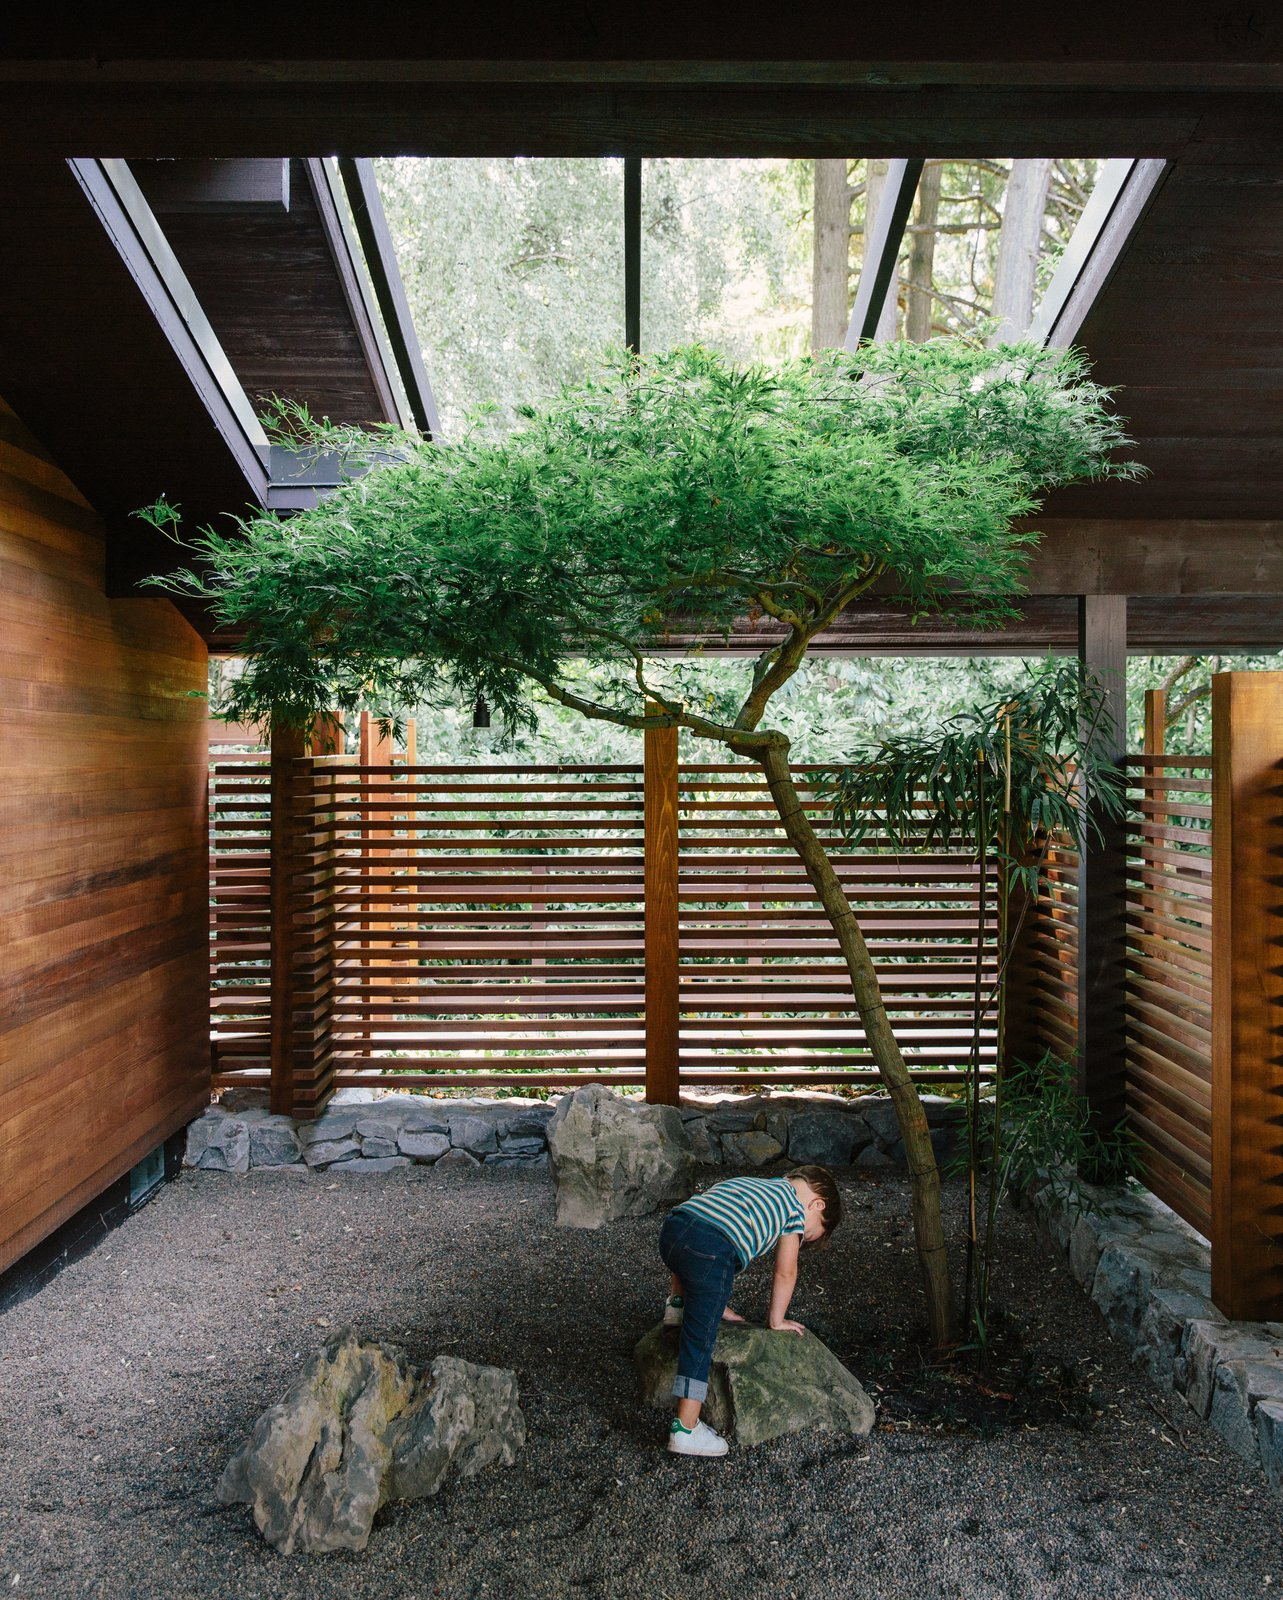 Outdoor Aaron and Yuka Ruell transformed a Portland ranch house into a retro-inspired family home with plenty of spaces—like the trellised porch—for their four children to roam.  Photo 3 of 12 in 5 Reasons Why Landscaping and Bringing Plants Into Your Home Is So Valuable from Wood Paneling Loses its Dated Reputation With This Renovation of a 1959 Portland Gem